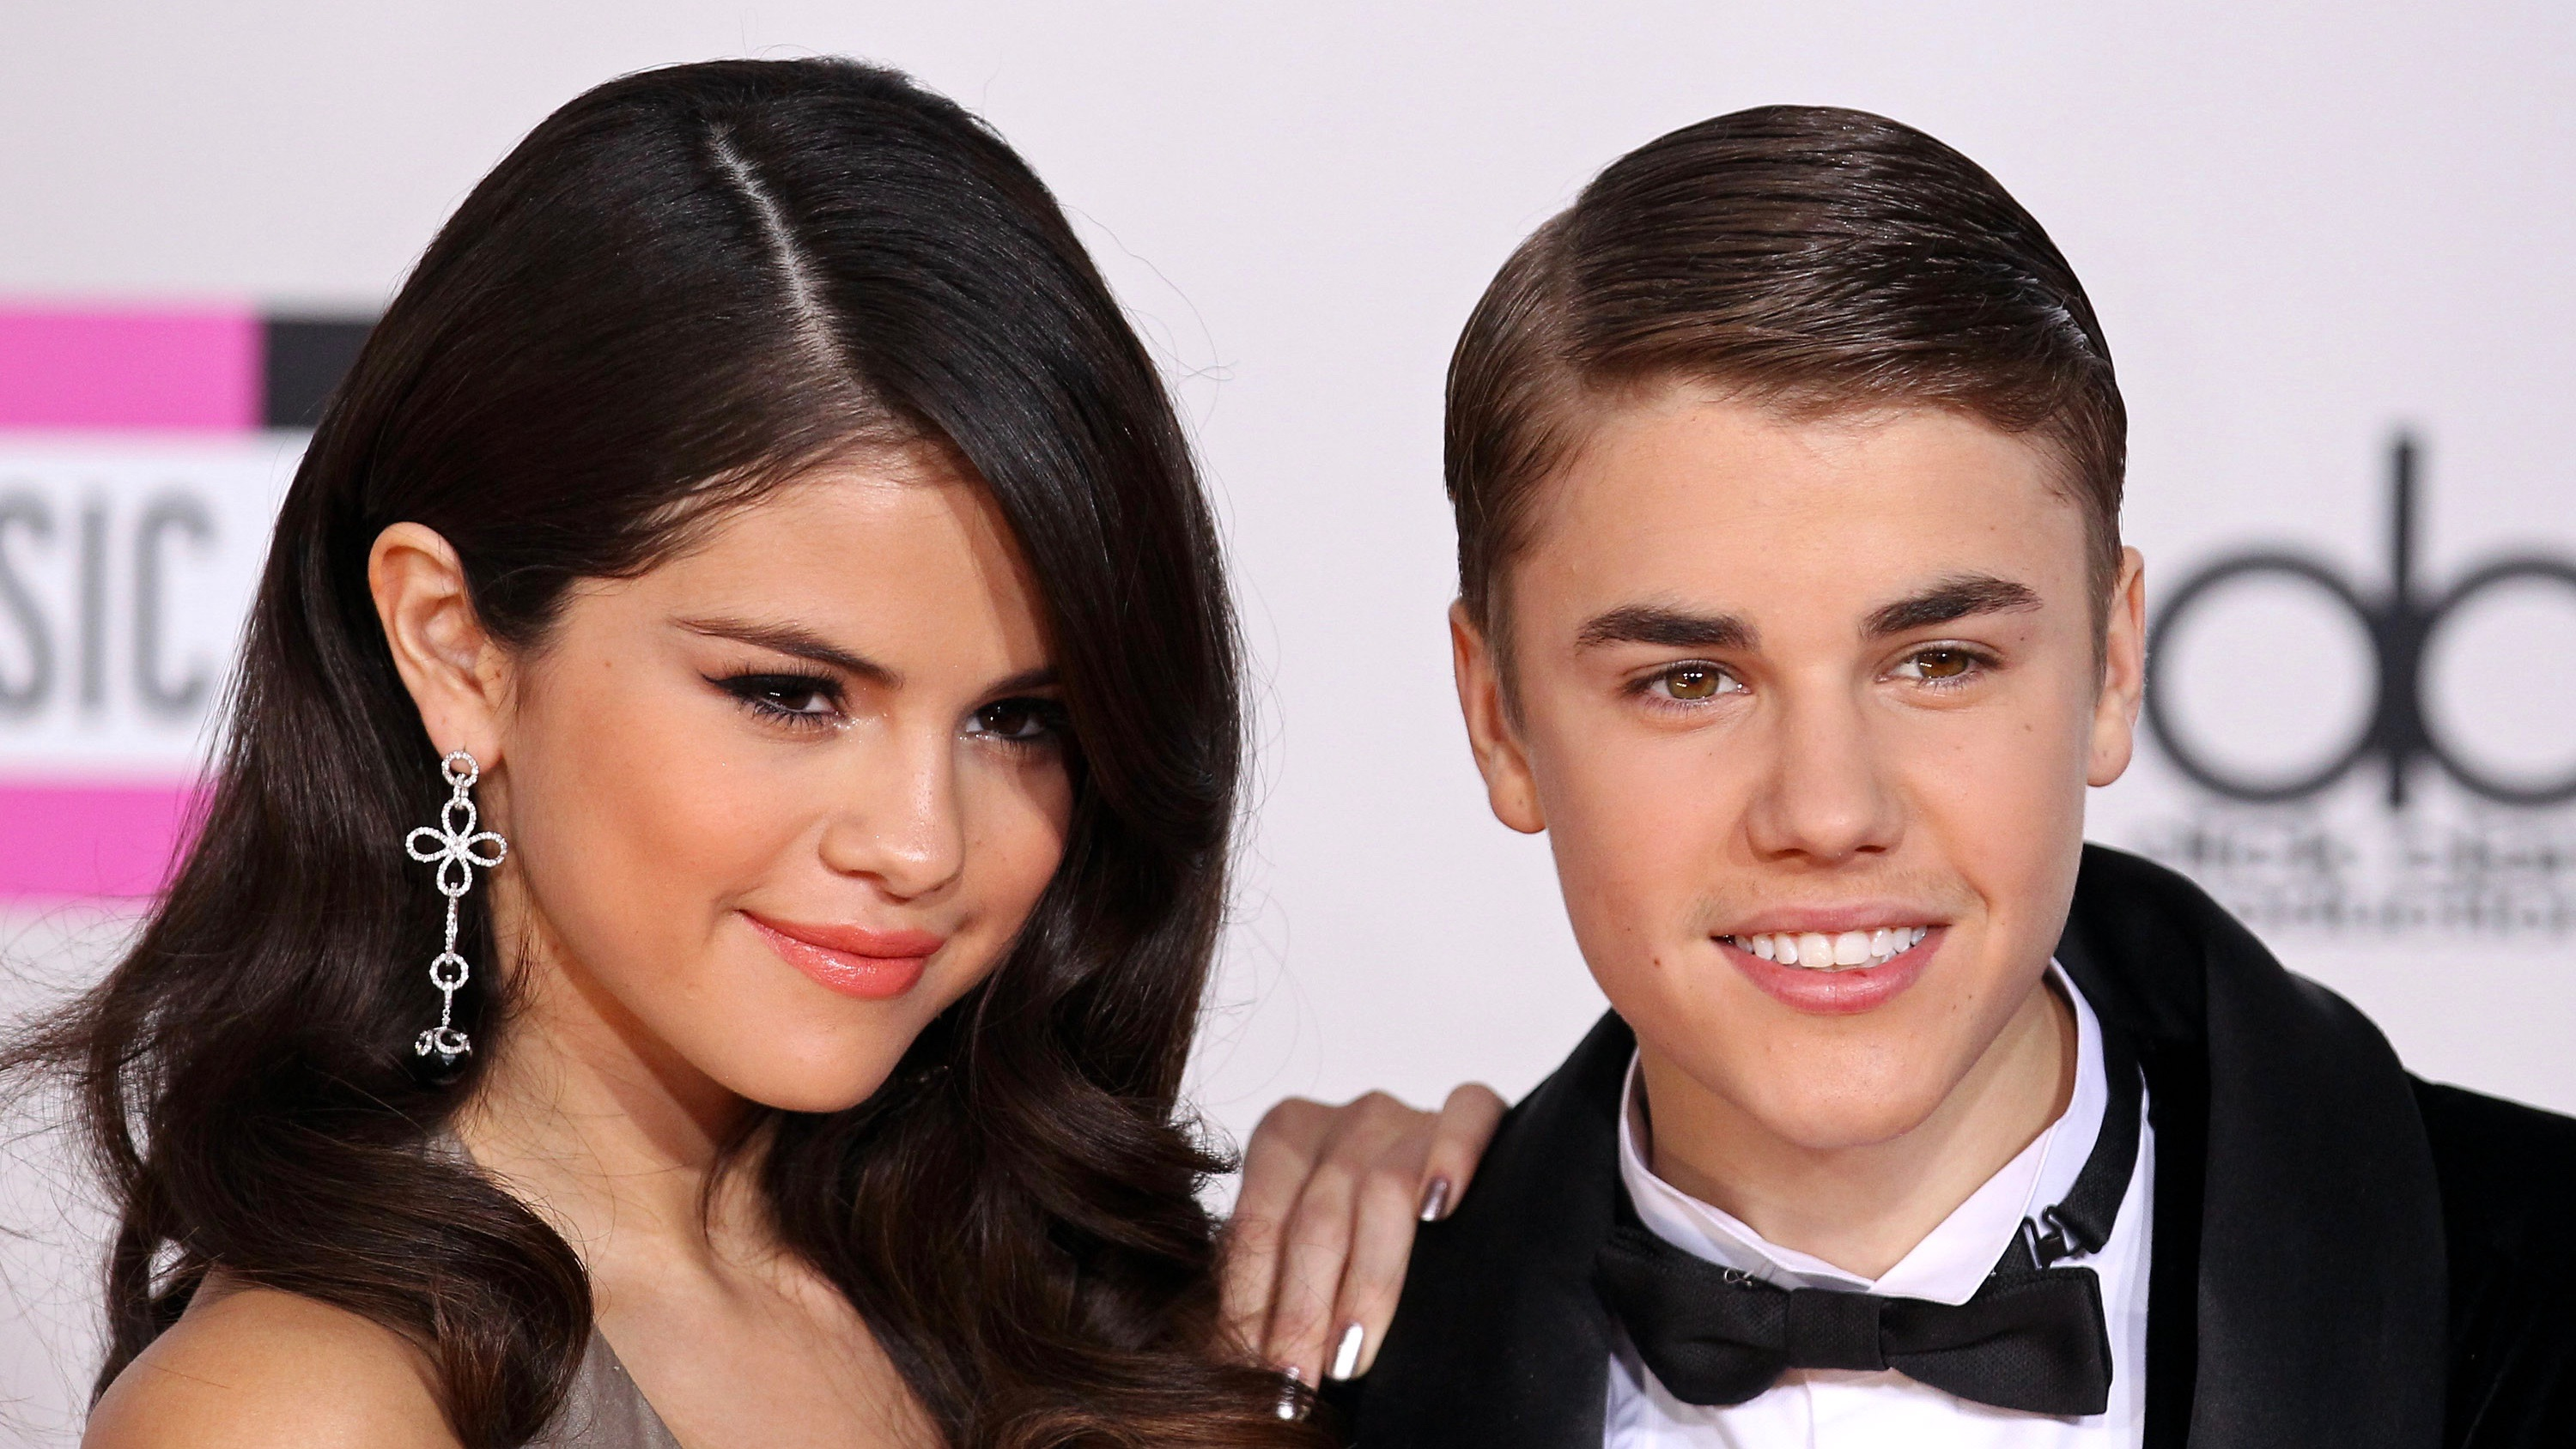 selena and justin bieber dating Selena gomez is, according to one report, pregnant thanks to justin bieber and putting conception in god's hands is this true.